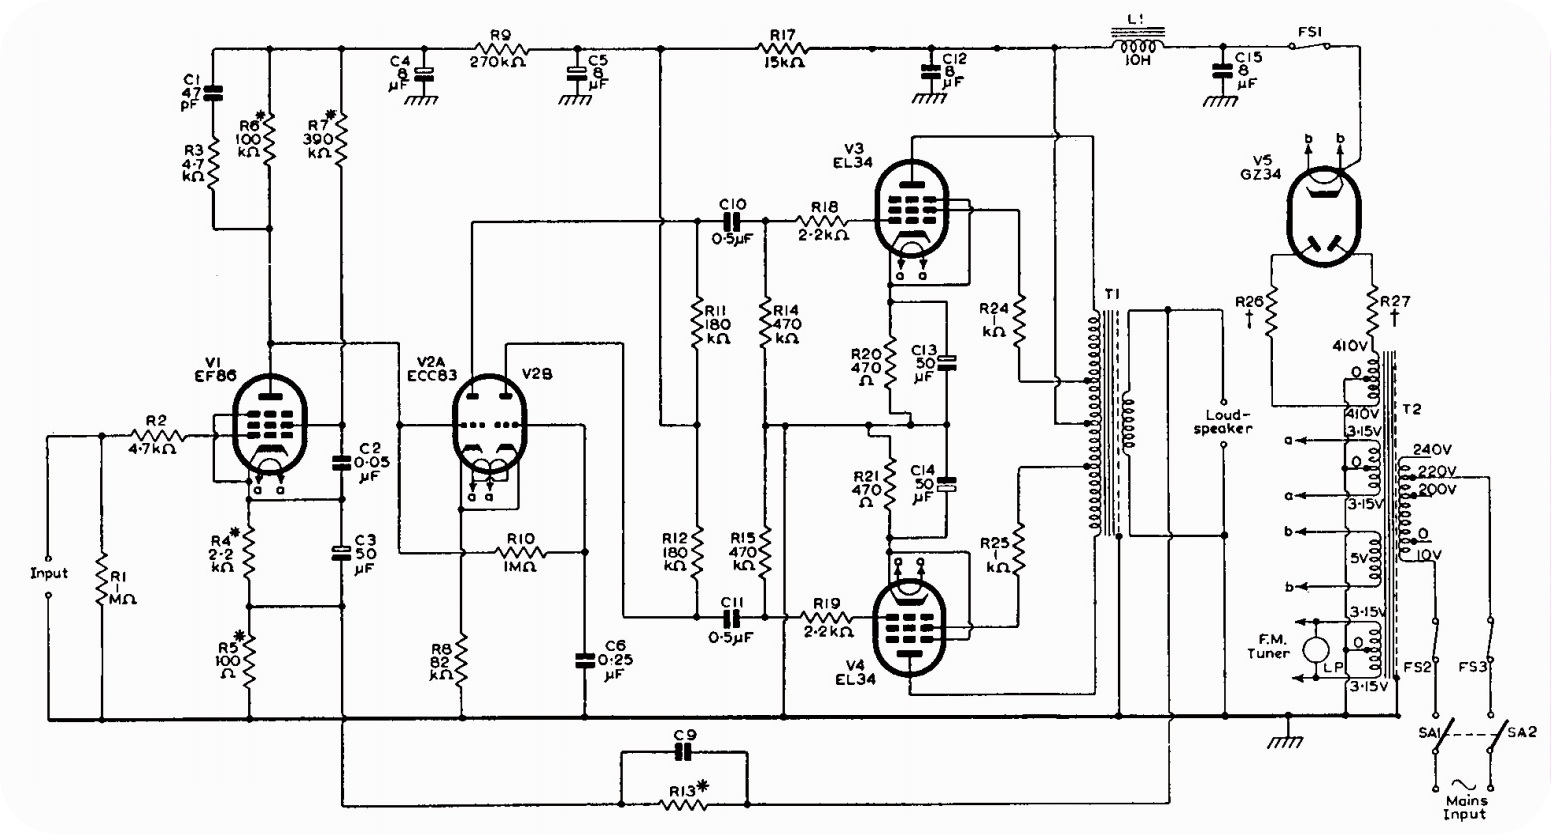 1 electronics ready remote 24921 installation manual installation xcrs 500m wiring diagram at bakdesigns.co